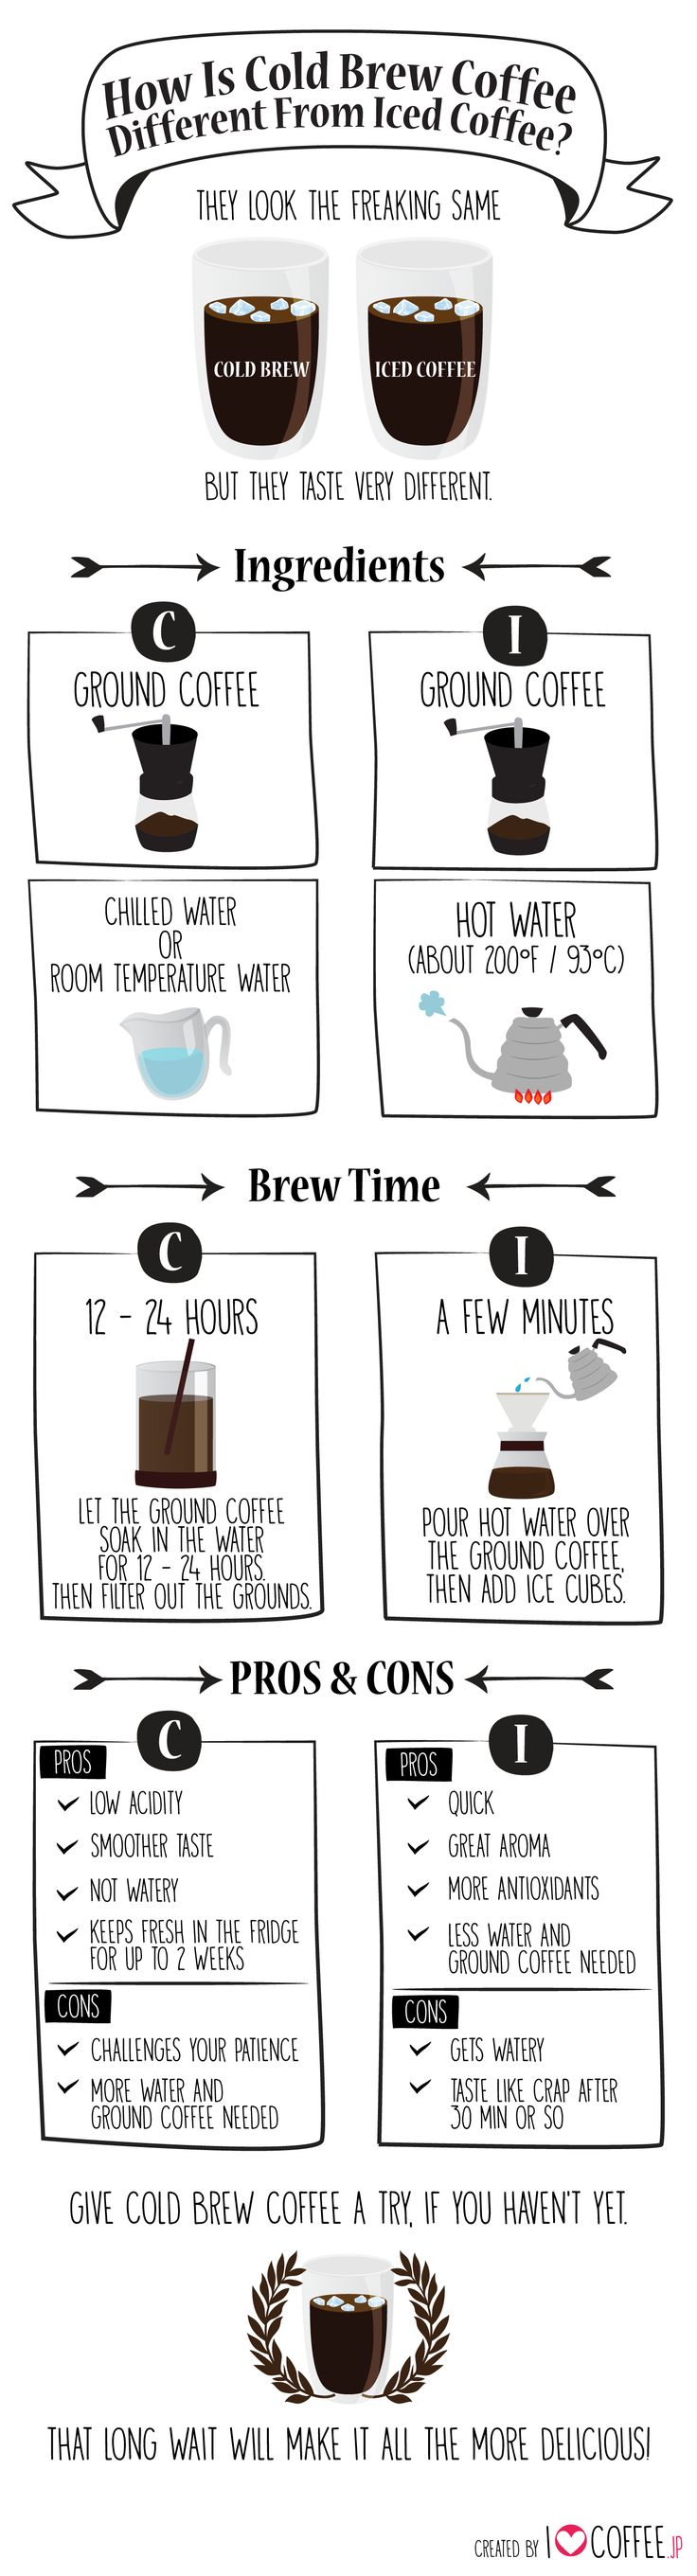 How is Cold Brew Coffee different from iced coffee?